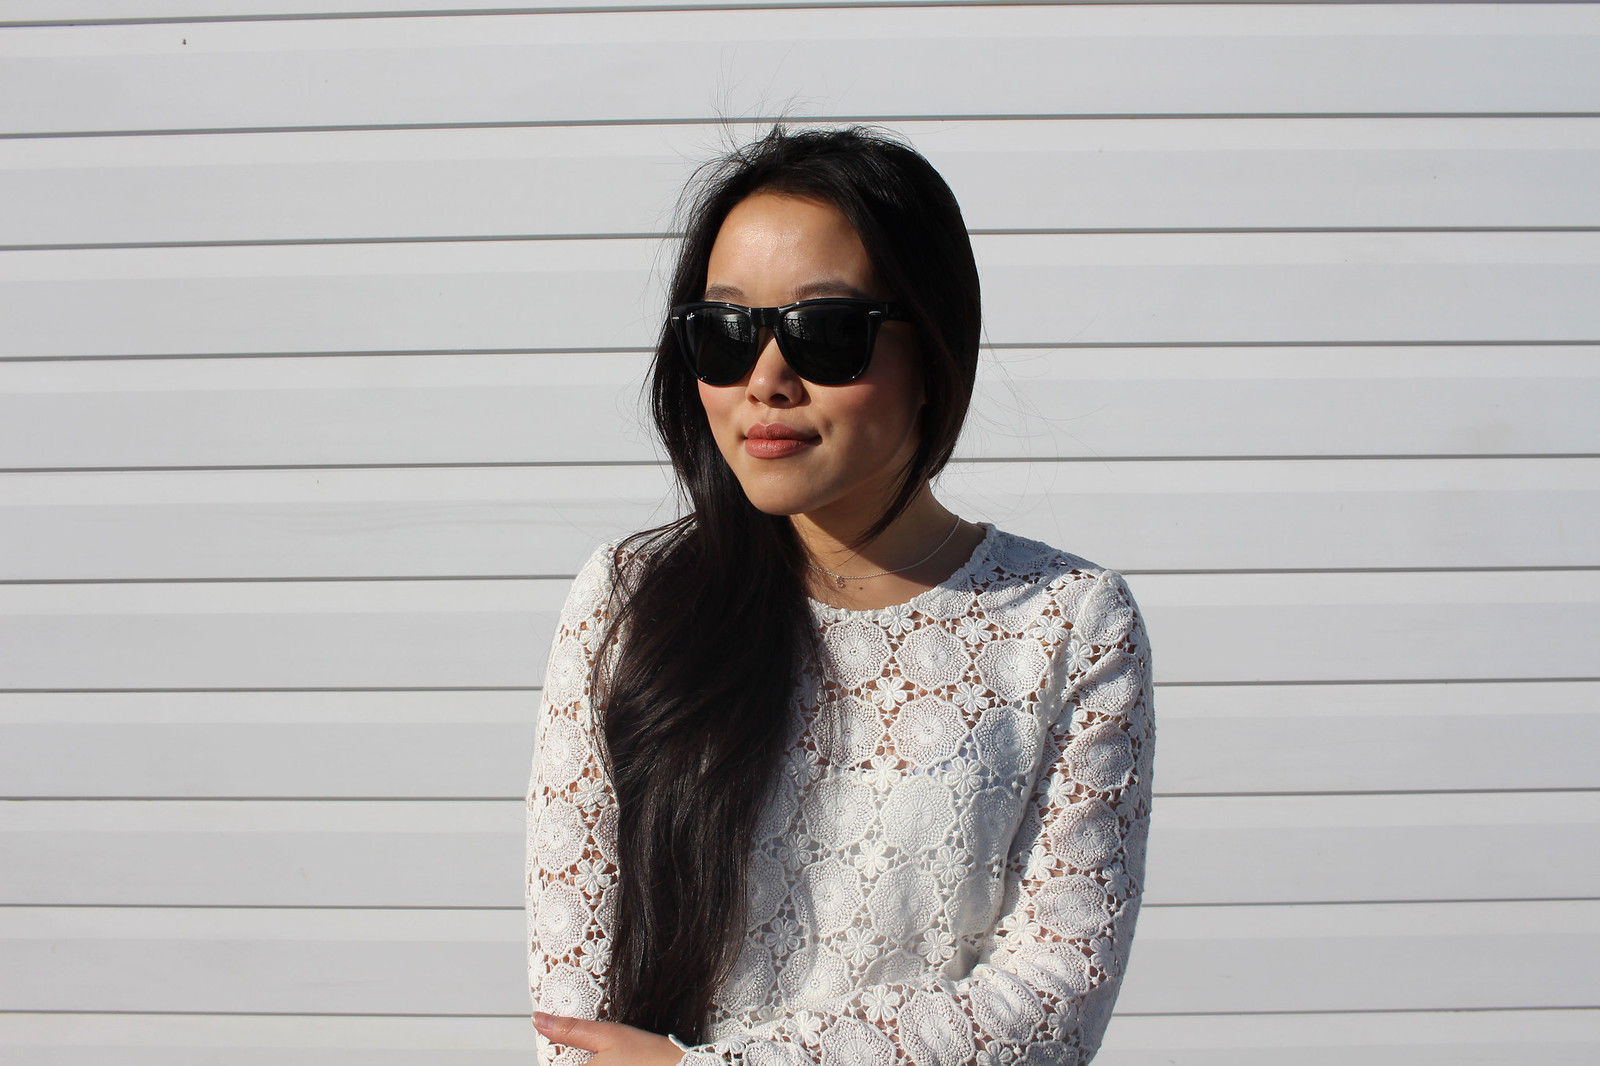 white-Boden-Floral-Lace-summer-Top-ootd-outfit-post